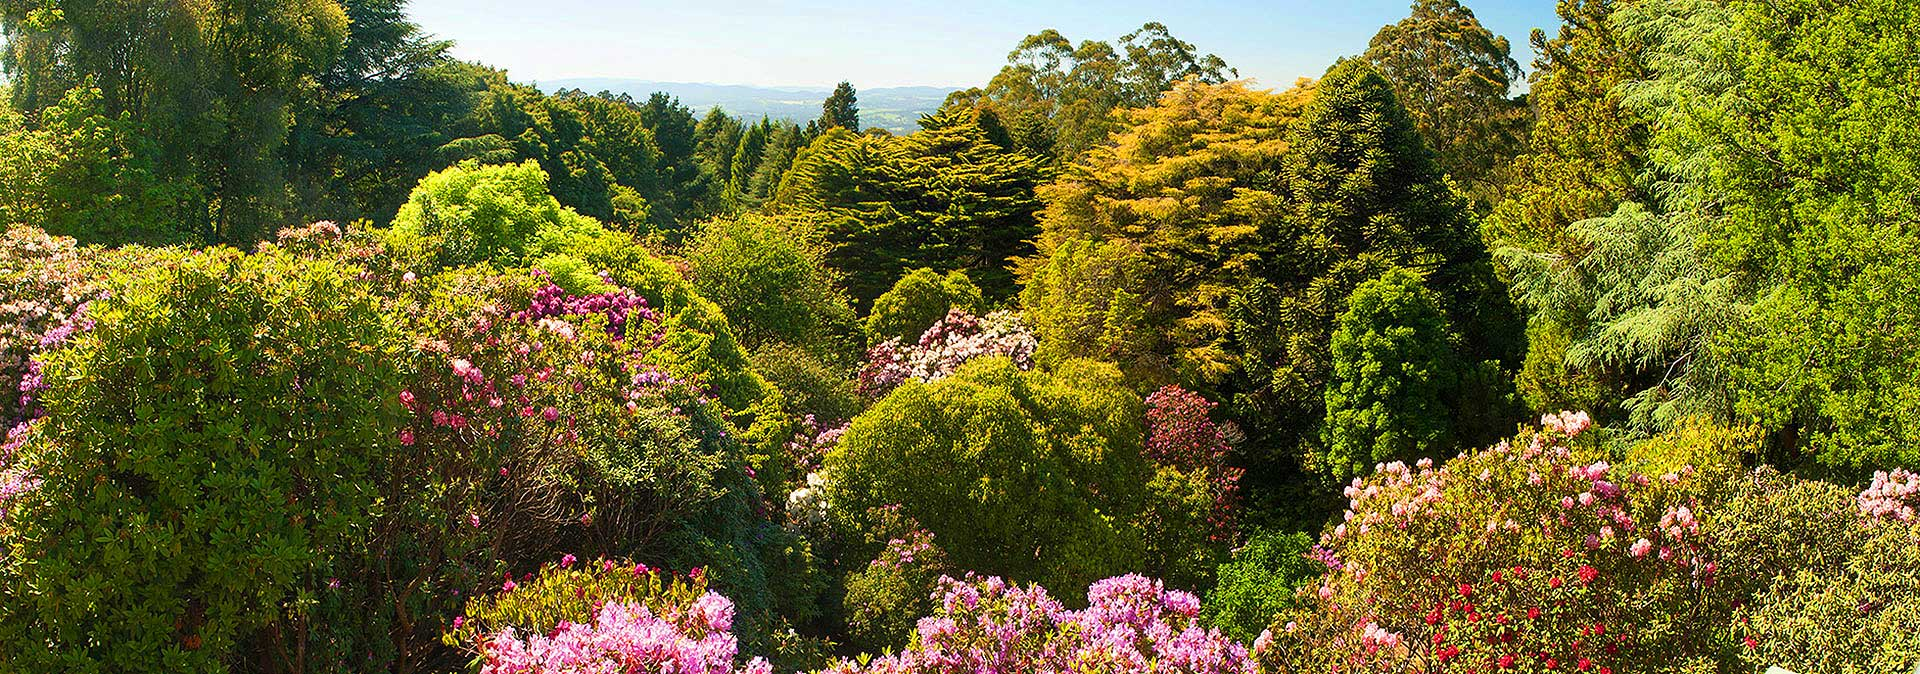 Dandenong Ranges Spring Gardens at Woolrich